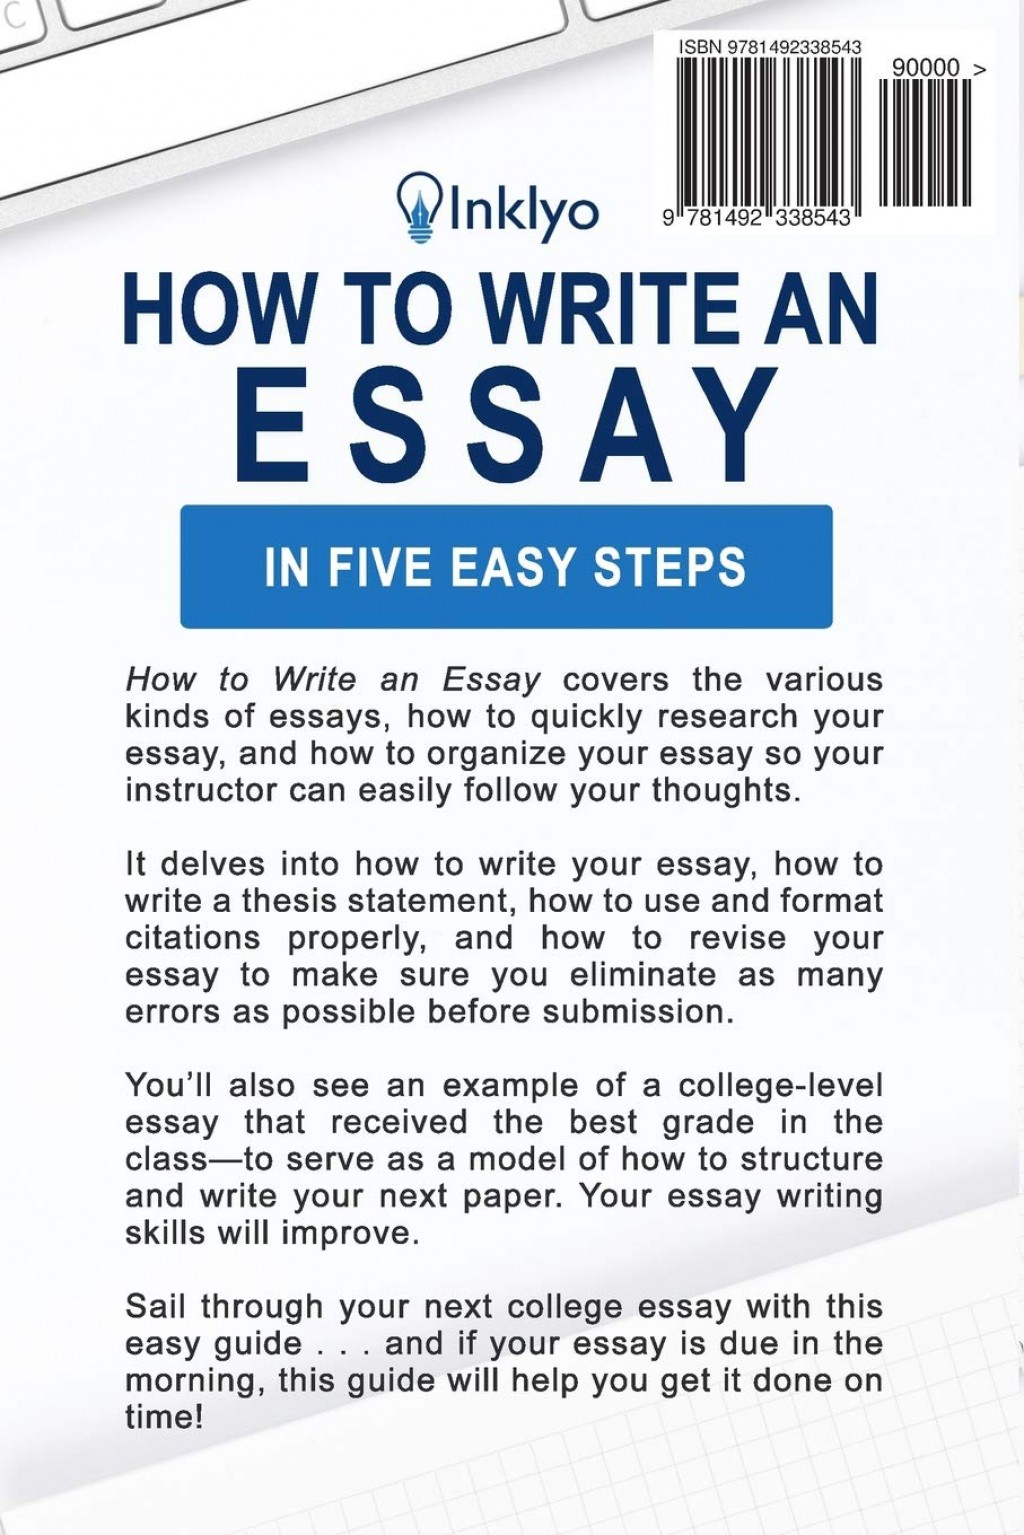 008 Essay Example 71v7ckw5pll Writing Best An Written Essays In Apa Format For College Application Academic Introduction Large